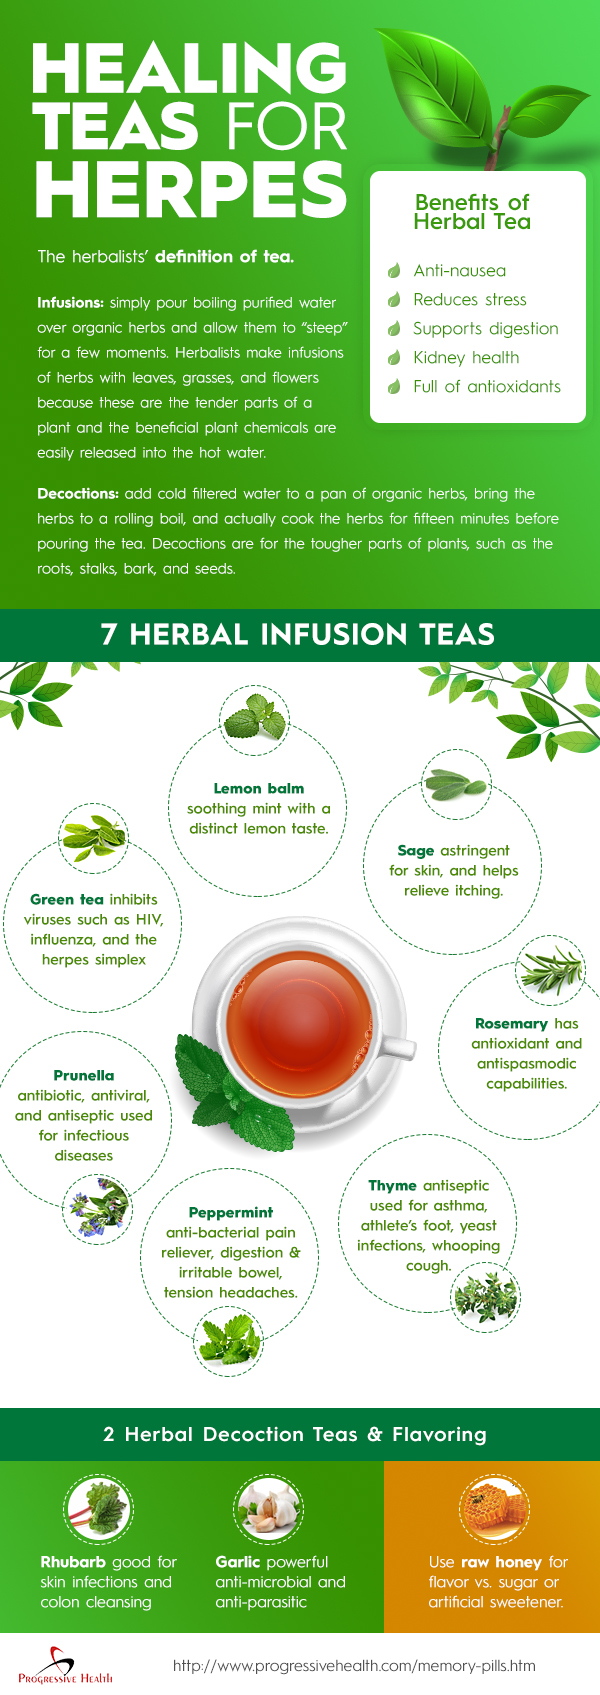 Tea for Herpes - ProgressiveHealth com